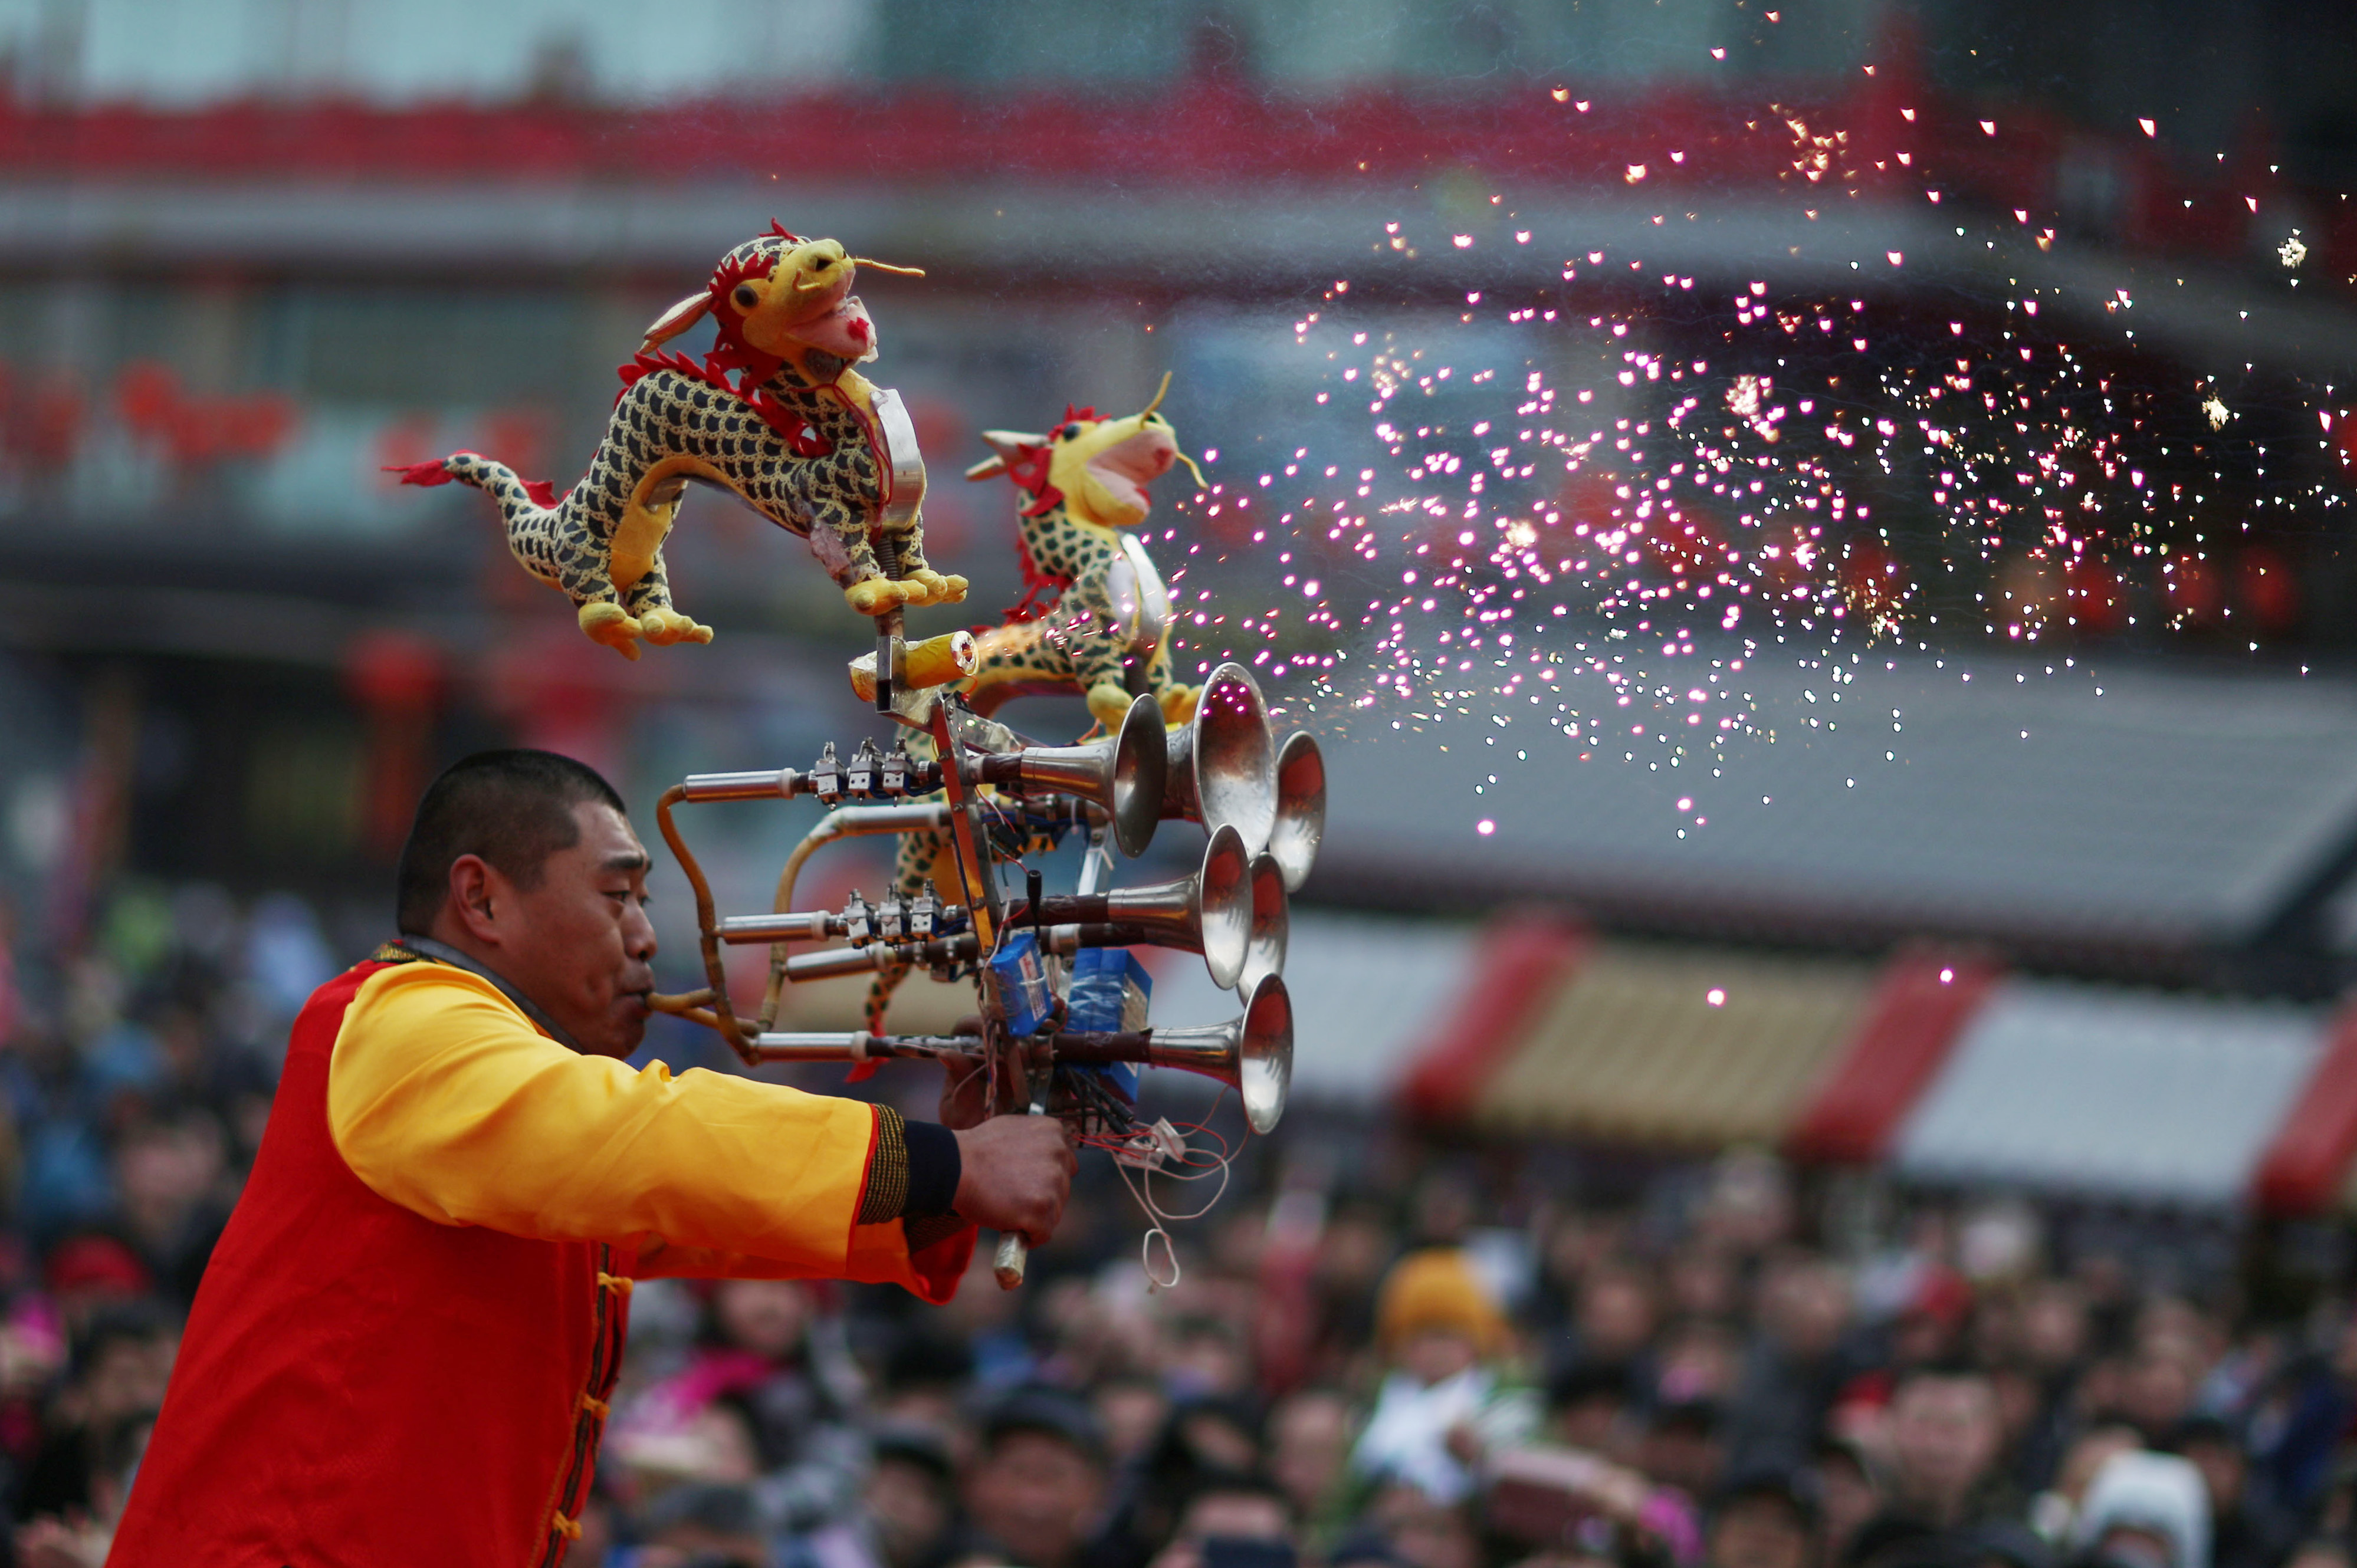 A man plays an instrument at a fair in the beginning of Chinese Lunar New Year at Huangsi Temple in Shenyang, Liaoning province, China on Feb. 8. Photo by Sheng Li/Reuters